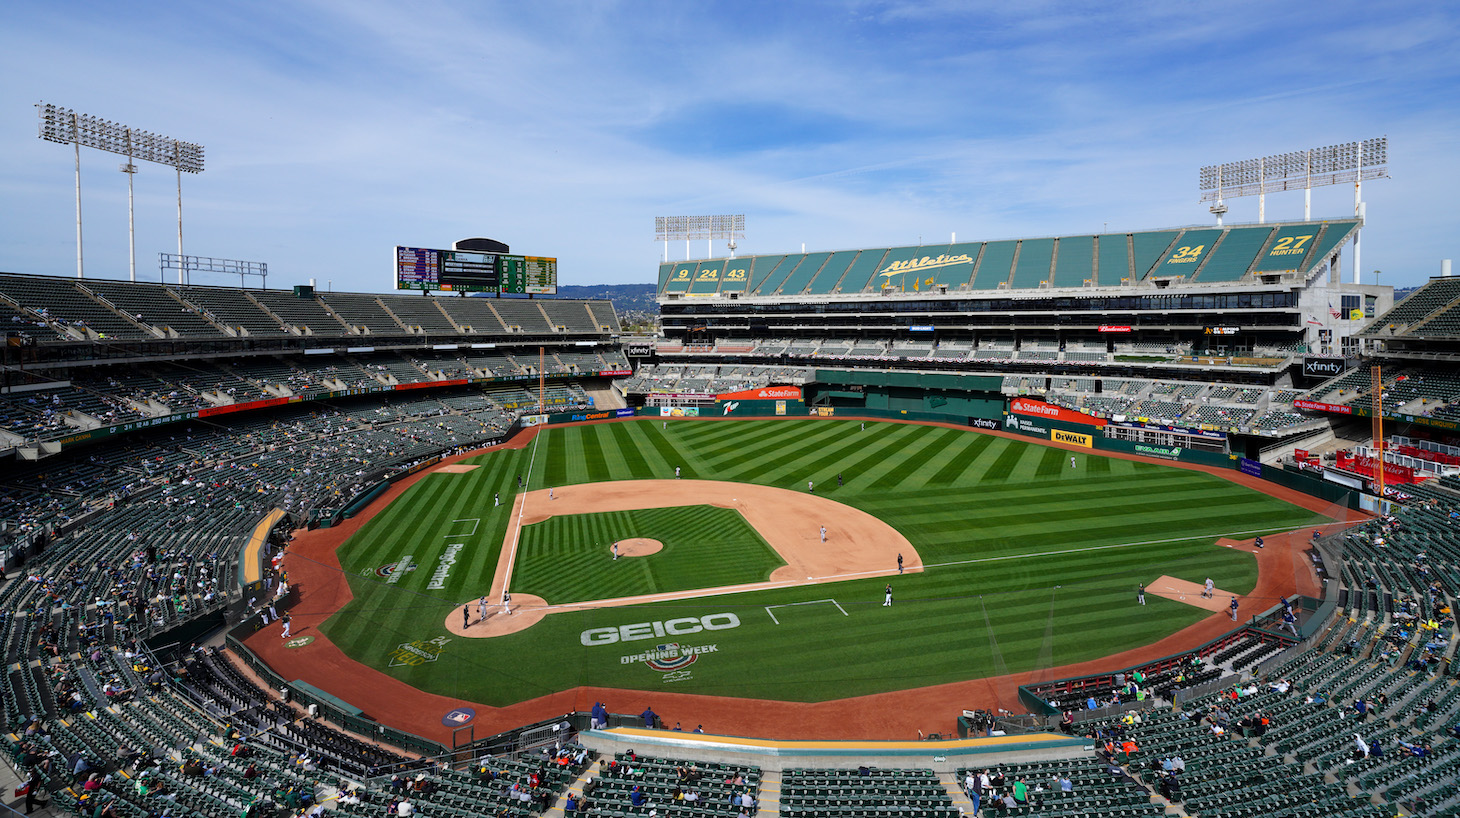 OAKLAND, CALIFORNIA - APRIL 04: A general view of RingCentral Coliseum during the game between the Oakland Athletics and the Houston Astros at RingCentral Coliseum on April 04, 2021 in Oakland, California. (Photo by Daniel Shirey/Getty Images)